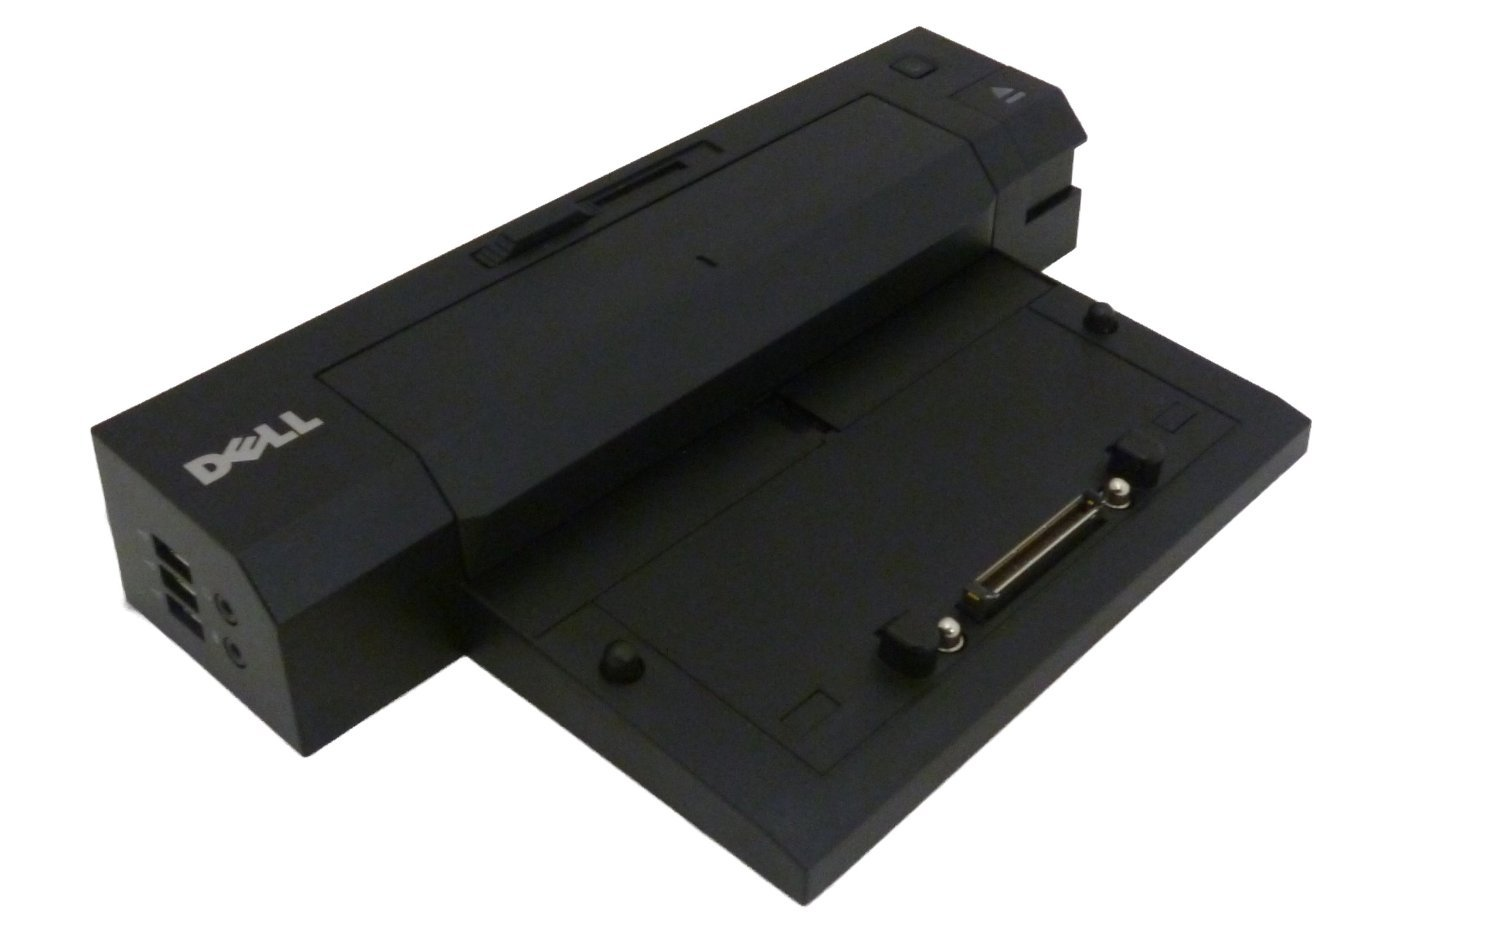 Dell Precision Latitude E-Port Plus Port Replicator Dock Docking Station by Dell (Image #1)